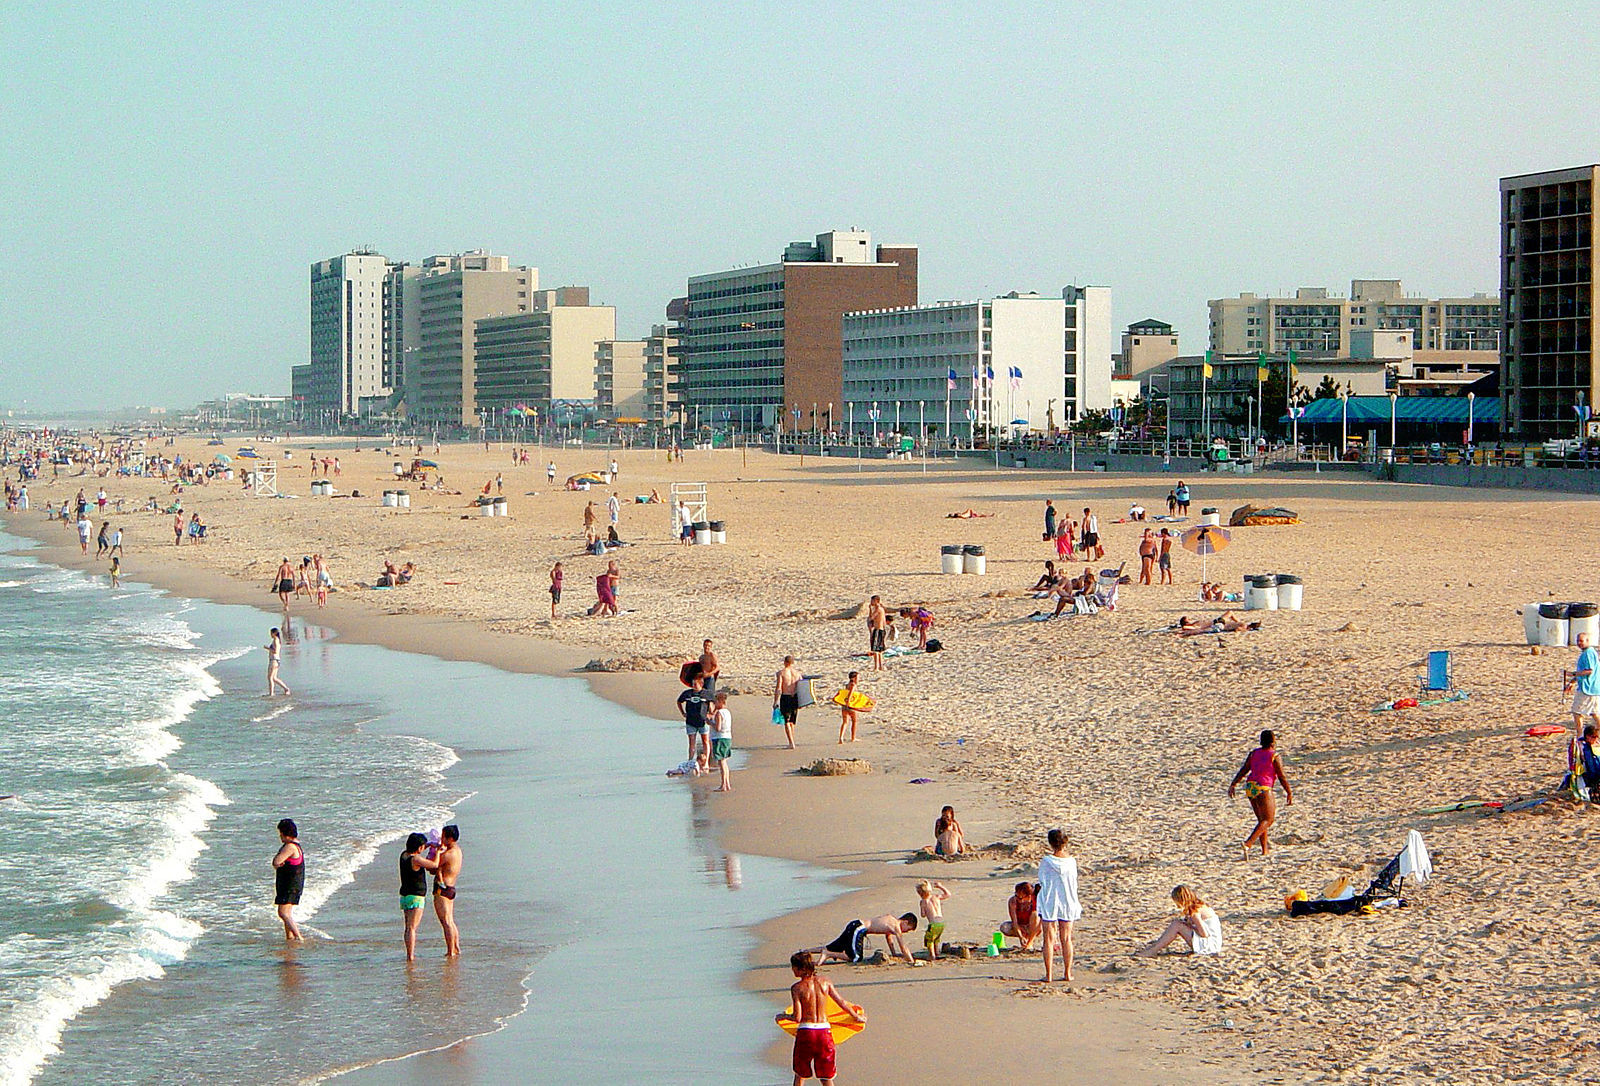 25 Best Things to Do in Virginia Beach to Plan Your Visit